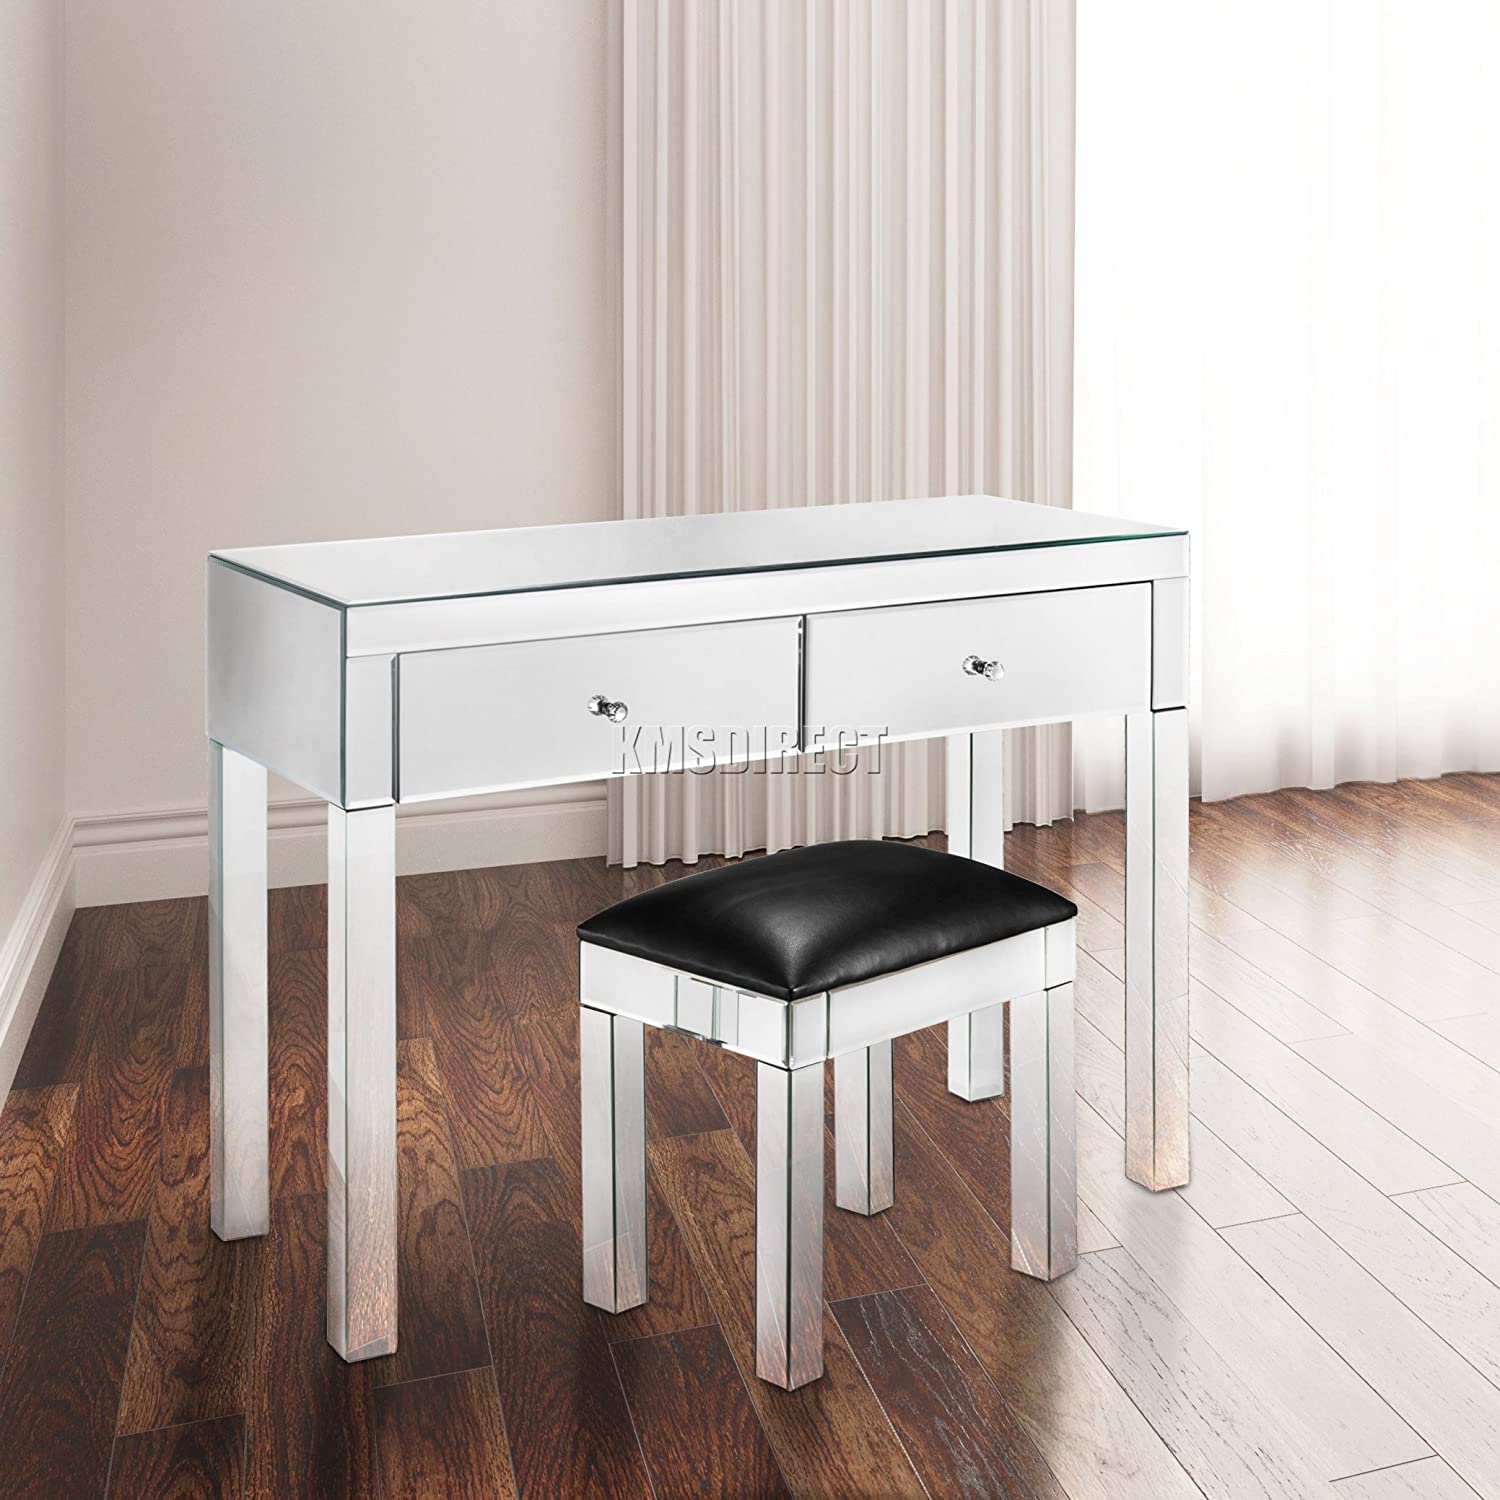 Mirrored Furniture Living Room Foxhunter Mirrored Furniture Glass 4 Drawer Chest Cabinet Table